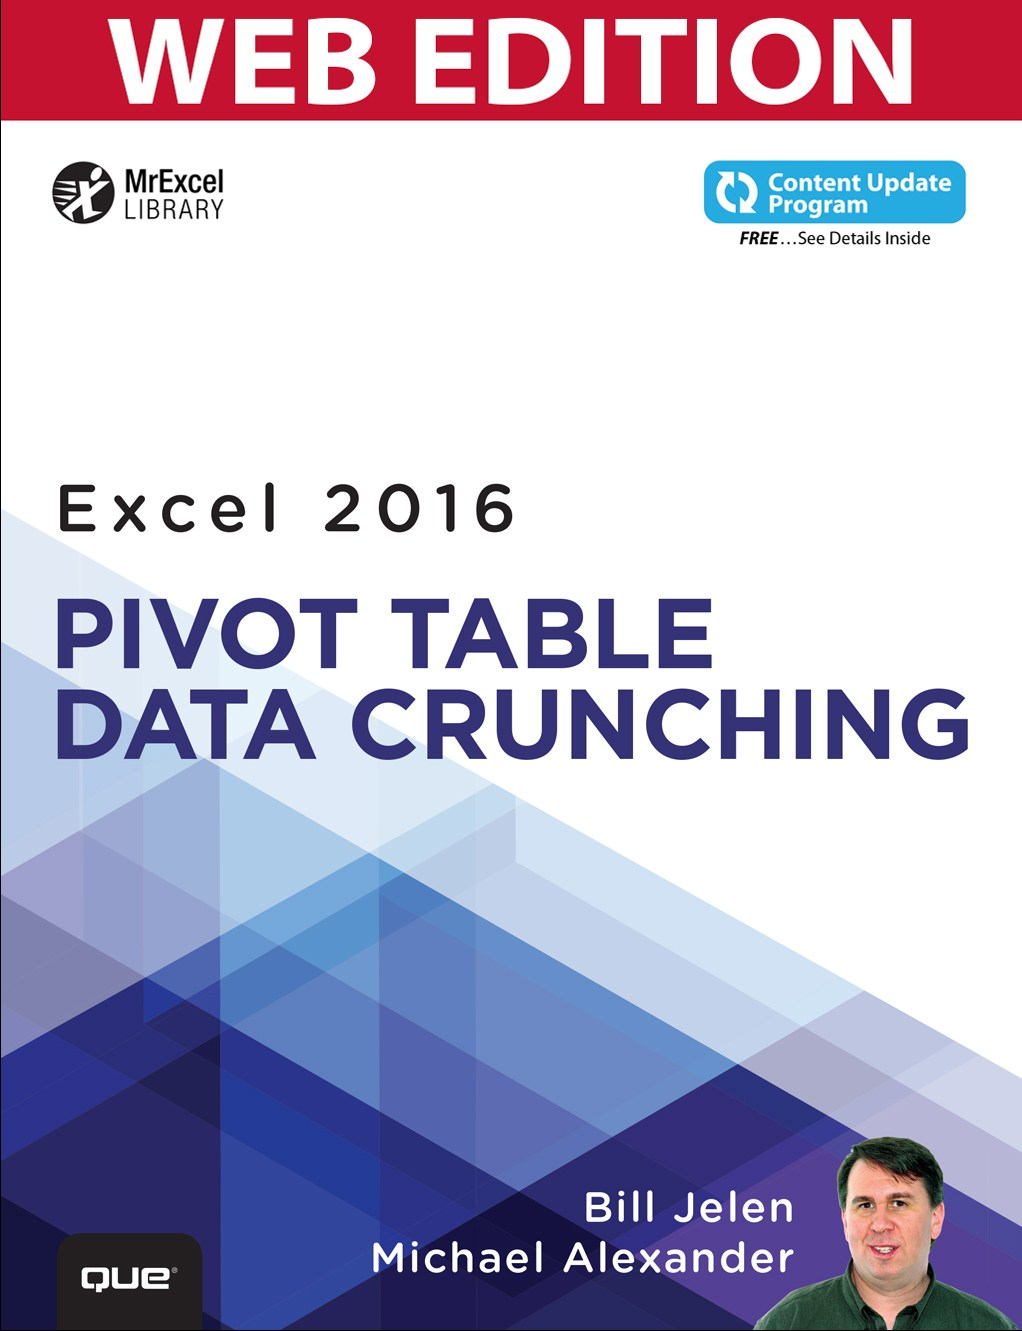 Excel 2016 Pivot Table Data Crunching (Web Edition with Content Update Program)